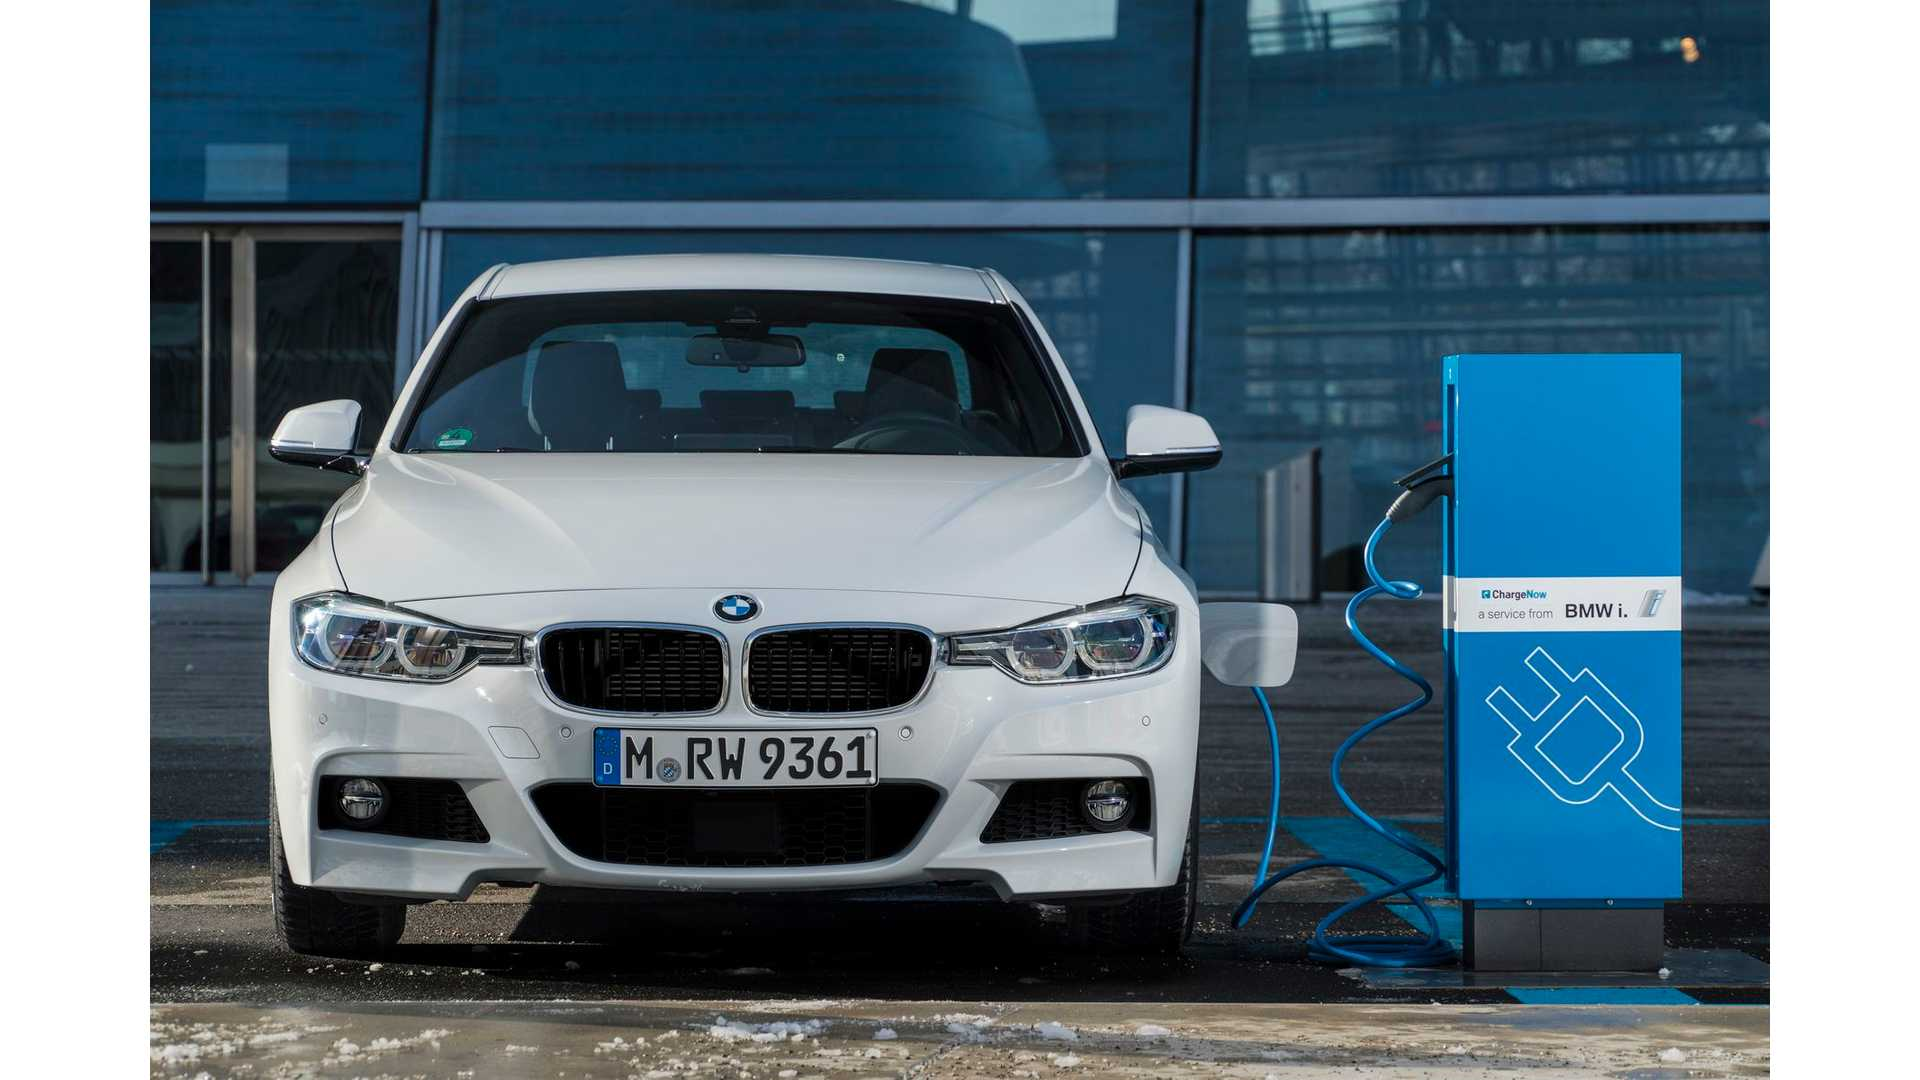 BMW Releases Full Details On The 330e iPerformance, On Sale Now